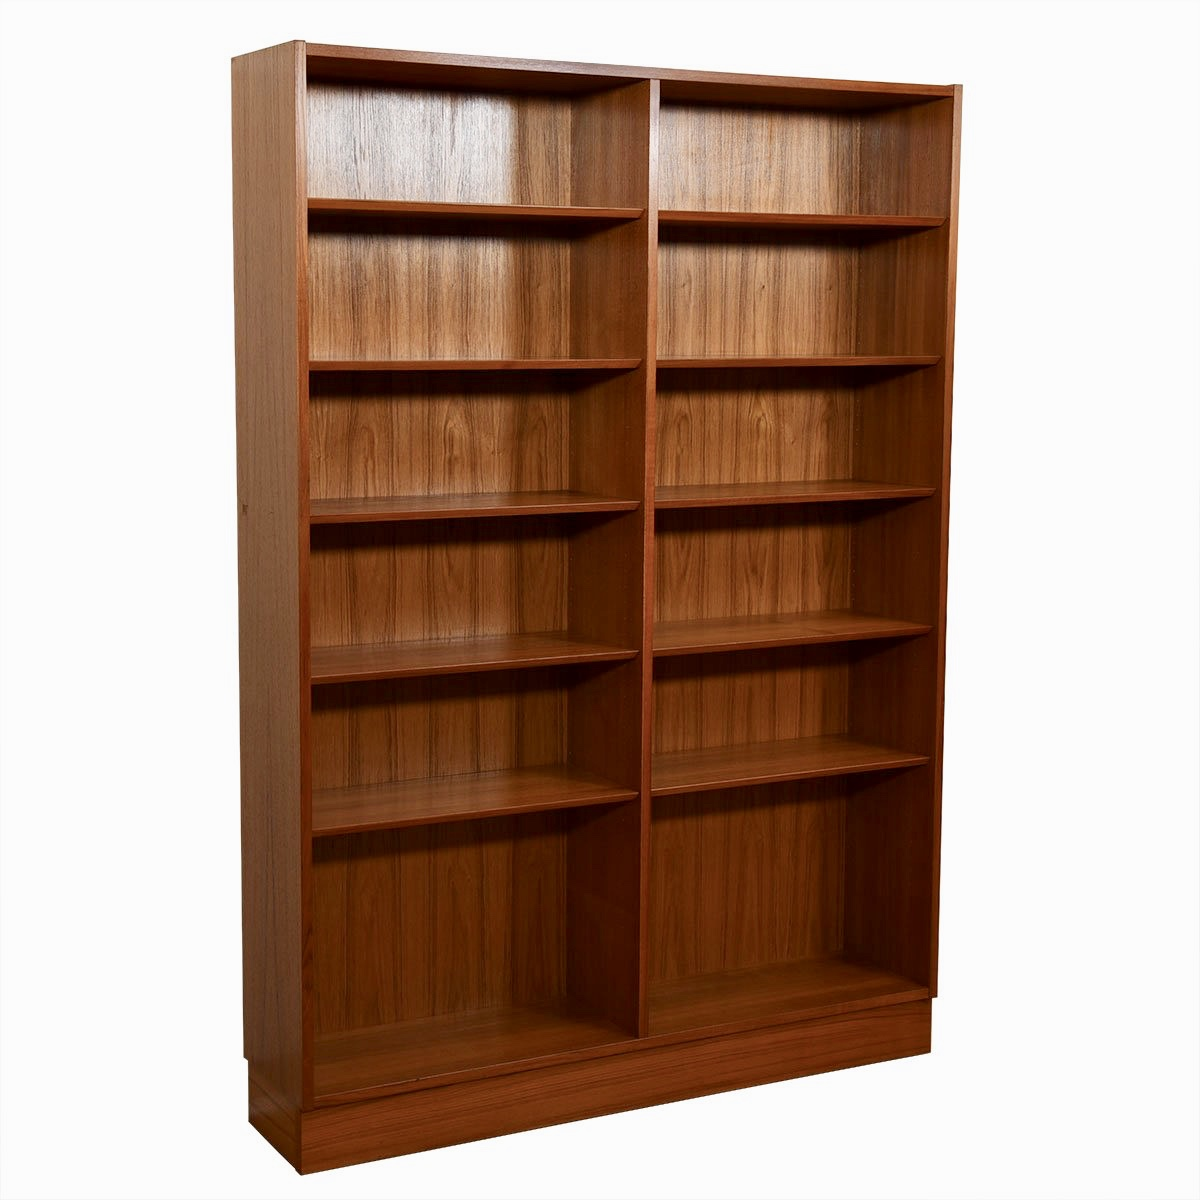 Danish Teak Tall + Wide Full Bookcase